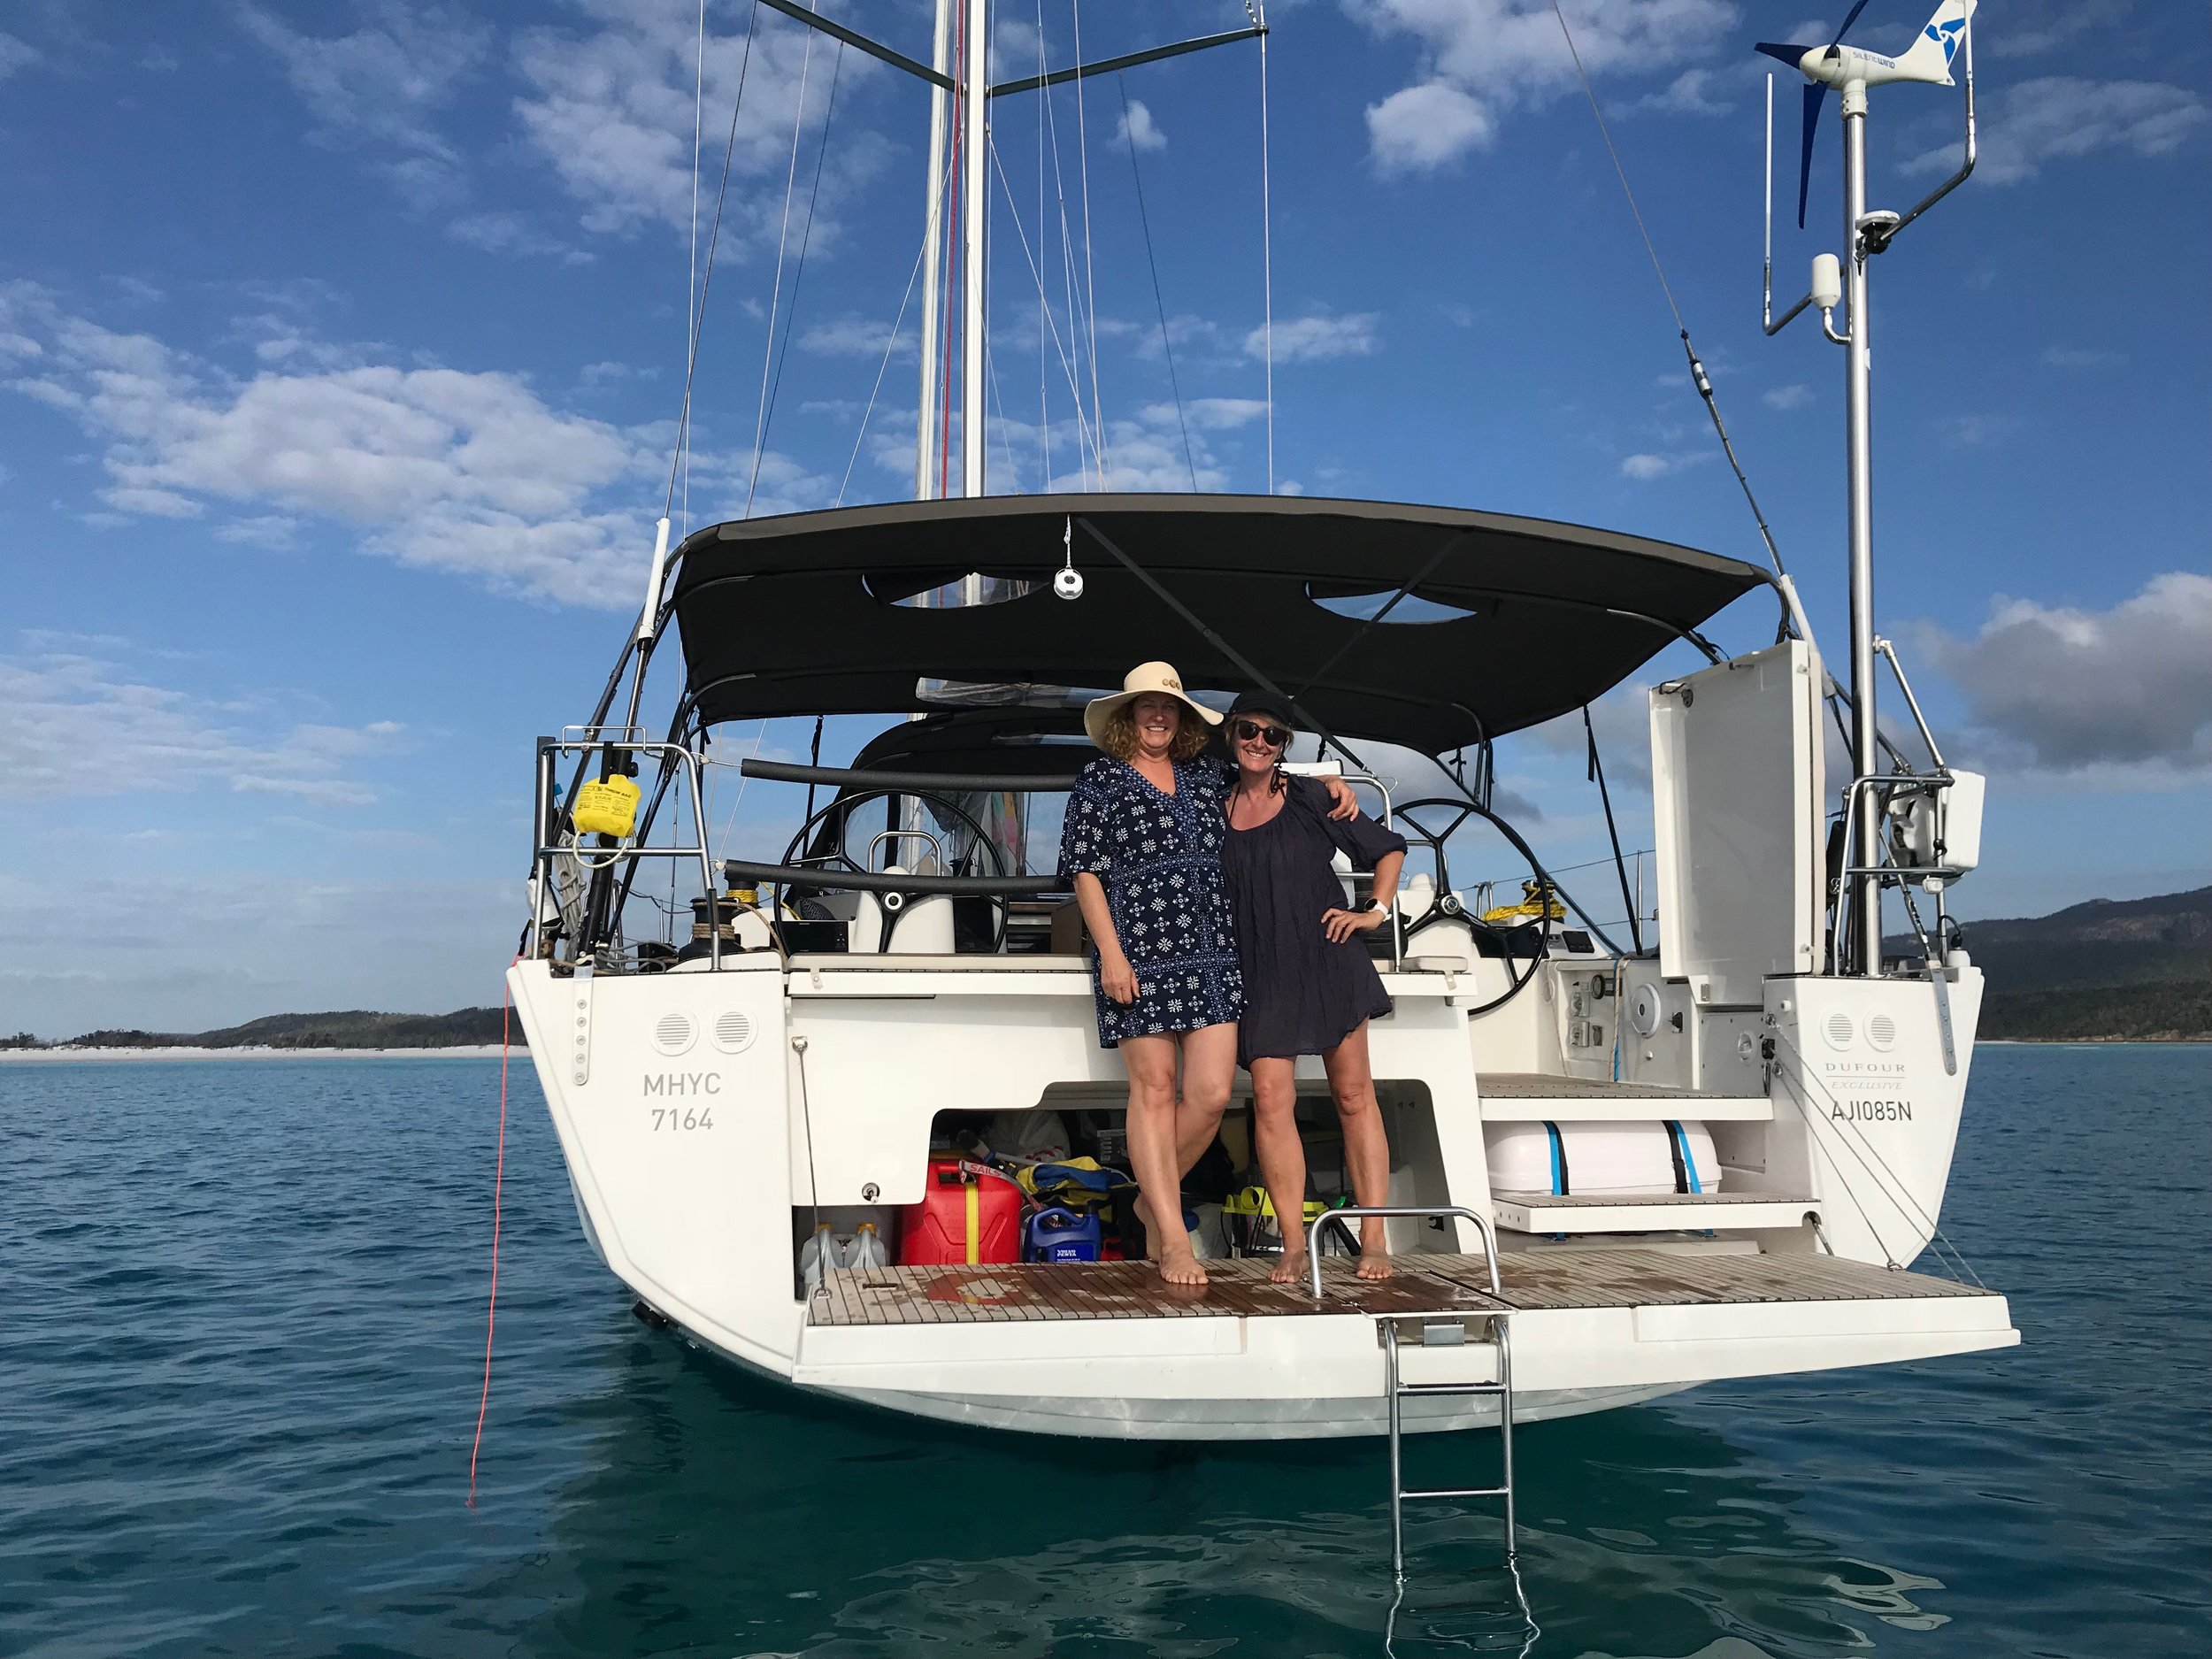 Nicky and I anchored up at Whitehaven